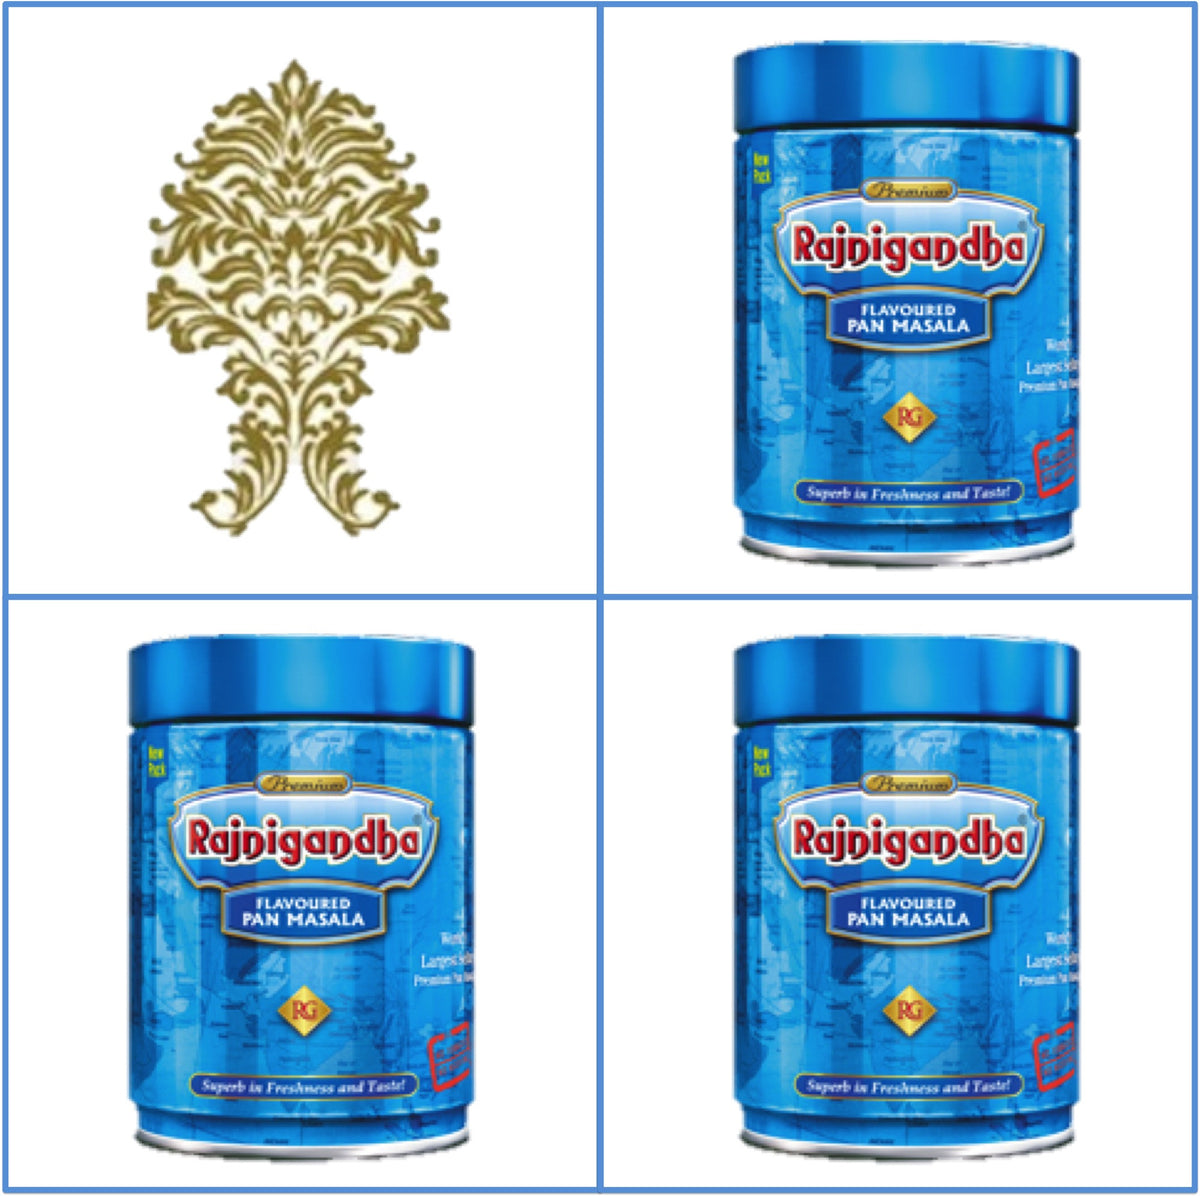 Three (3) Cans 100g Rajnigandha Pan Masala Export Quality August 2020